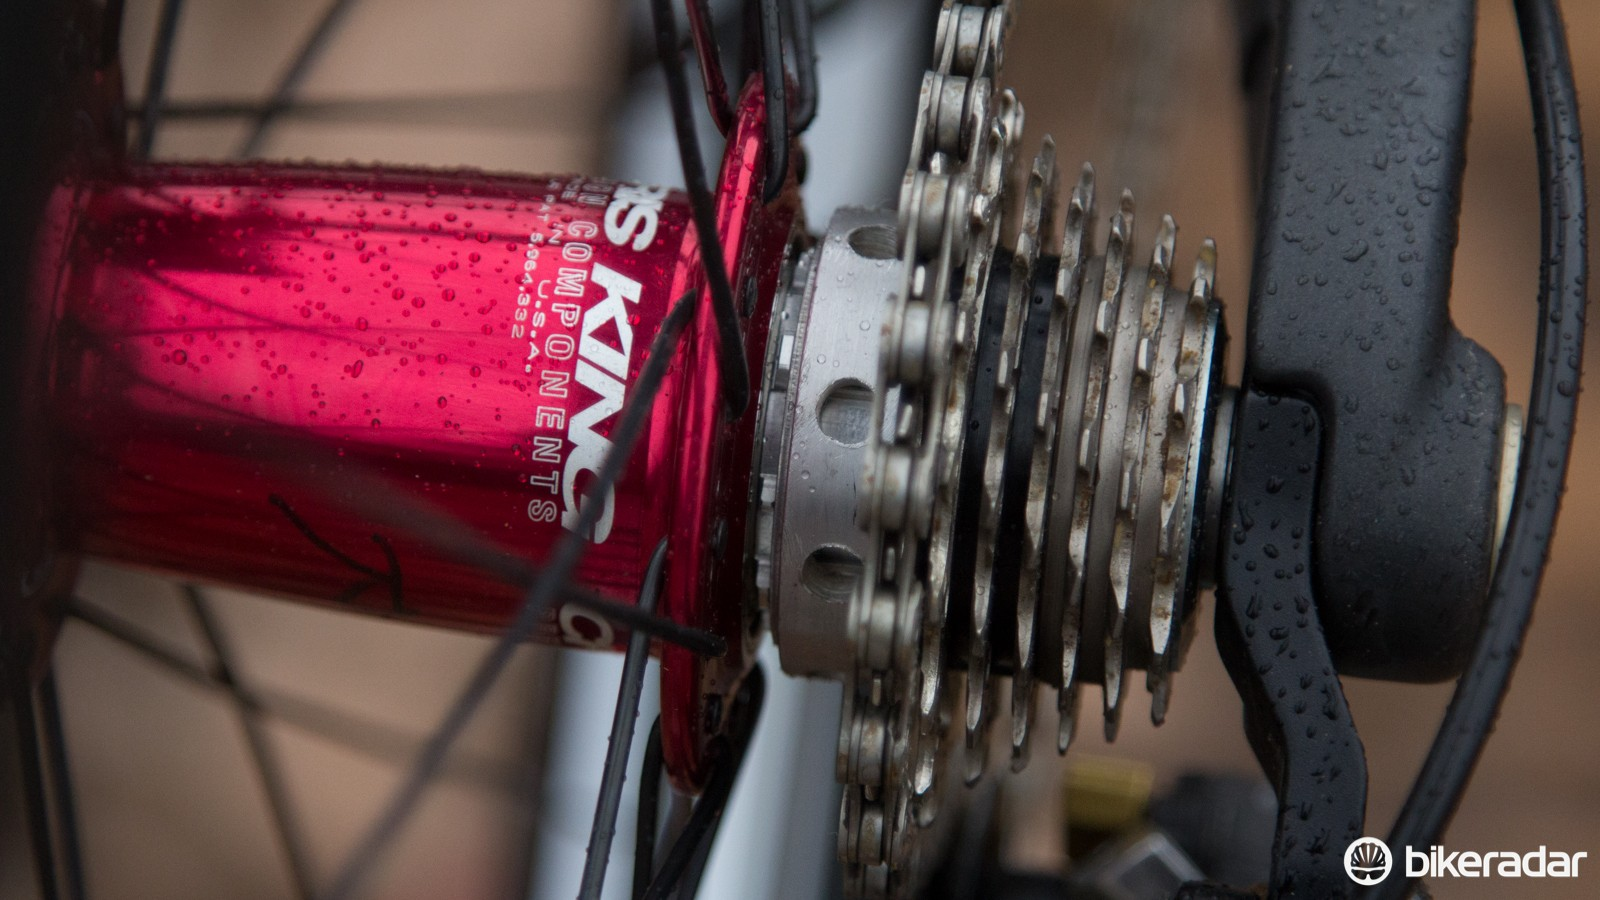 A custom ring saves weight and replaces the lower gears on this custom 11-19T Ultegra cassette